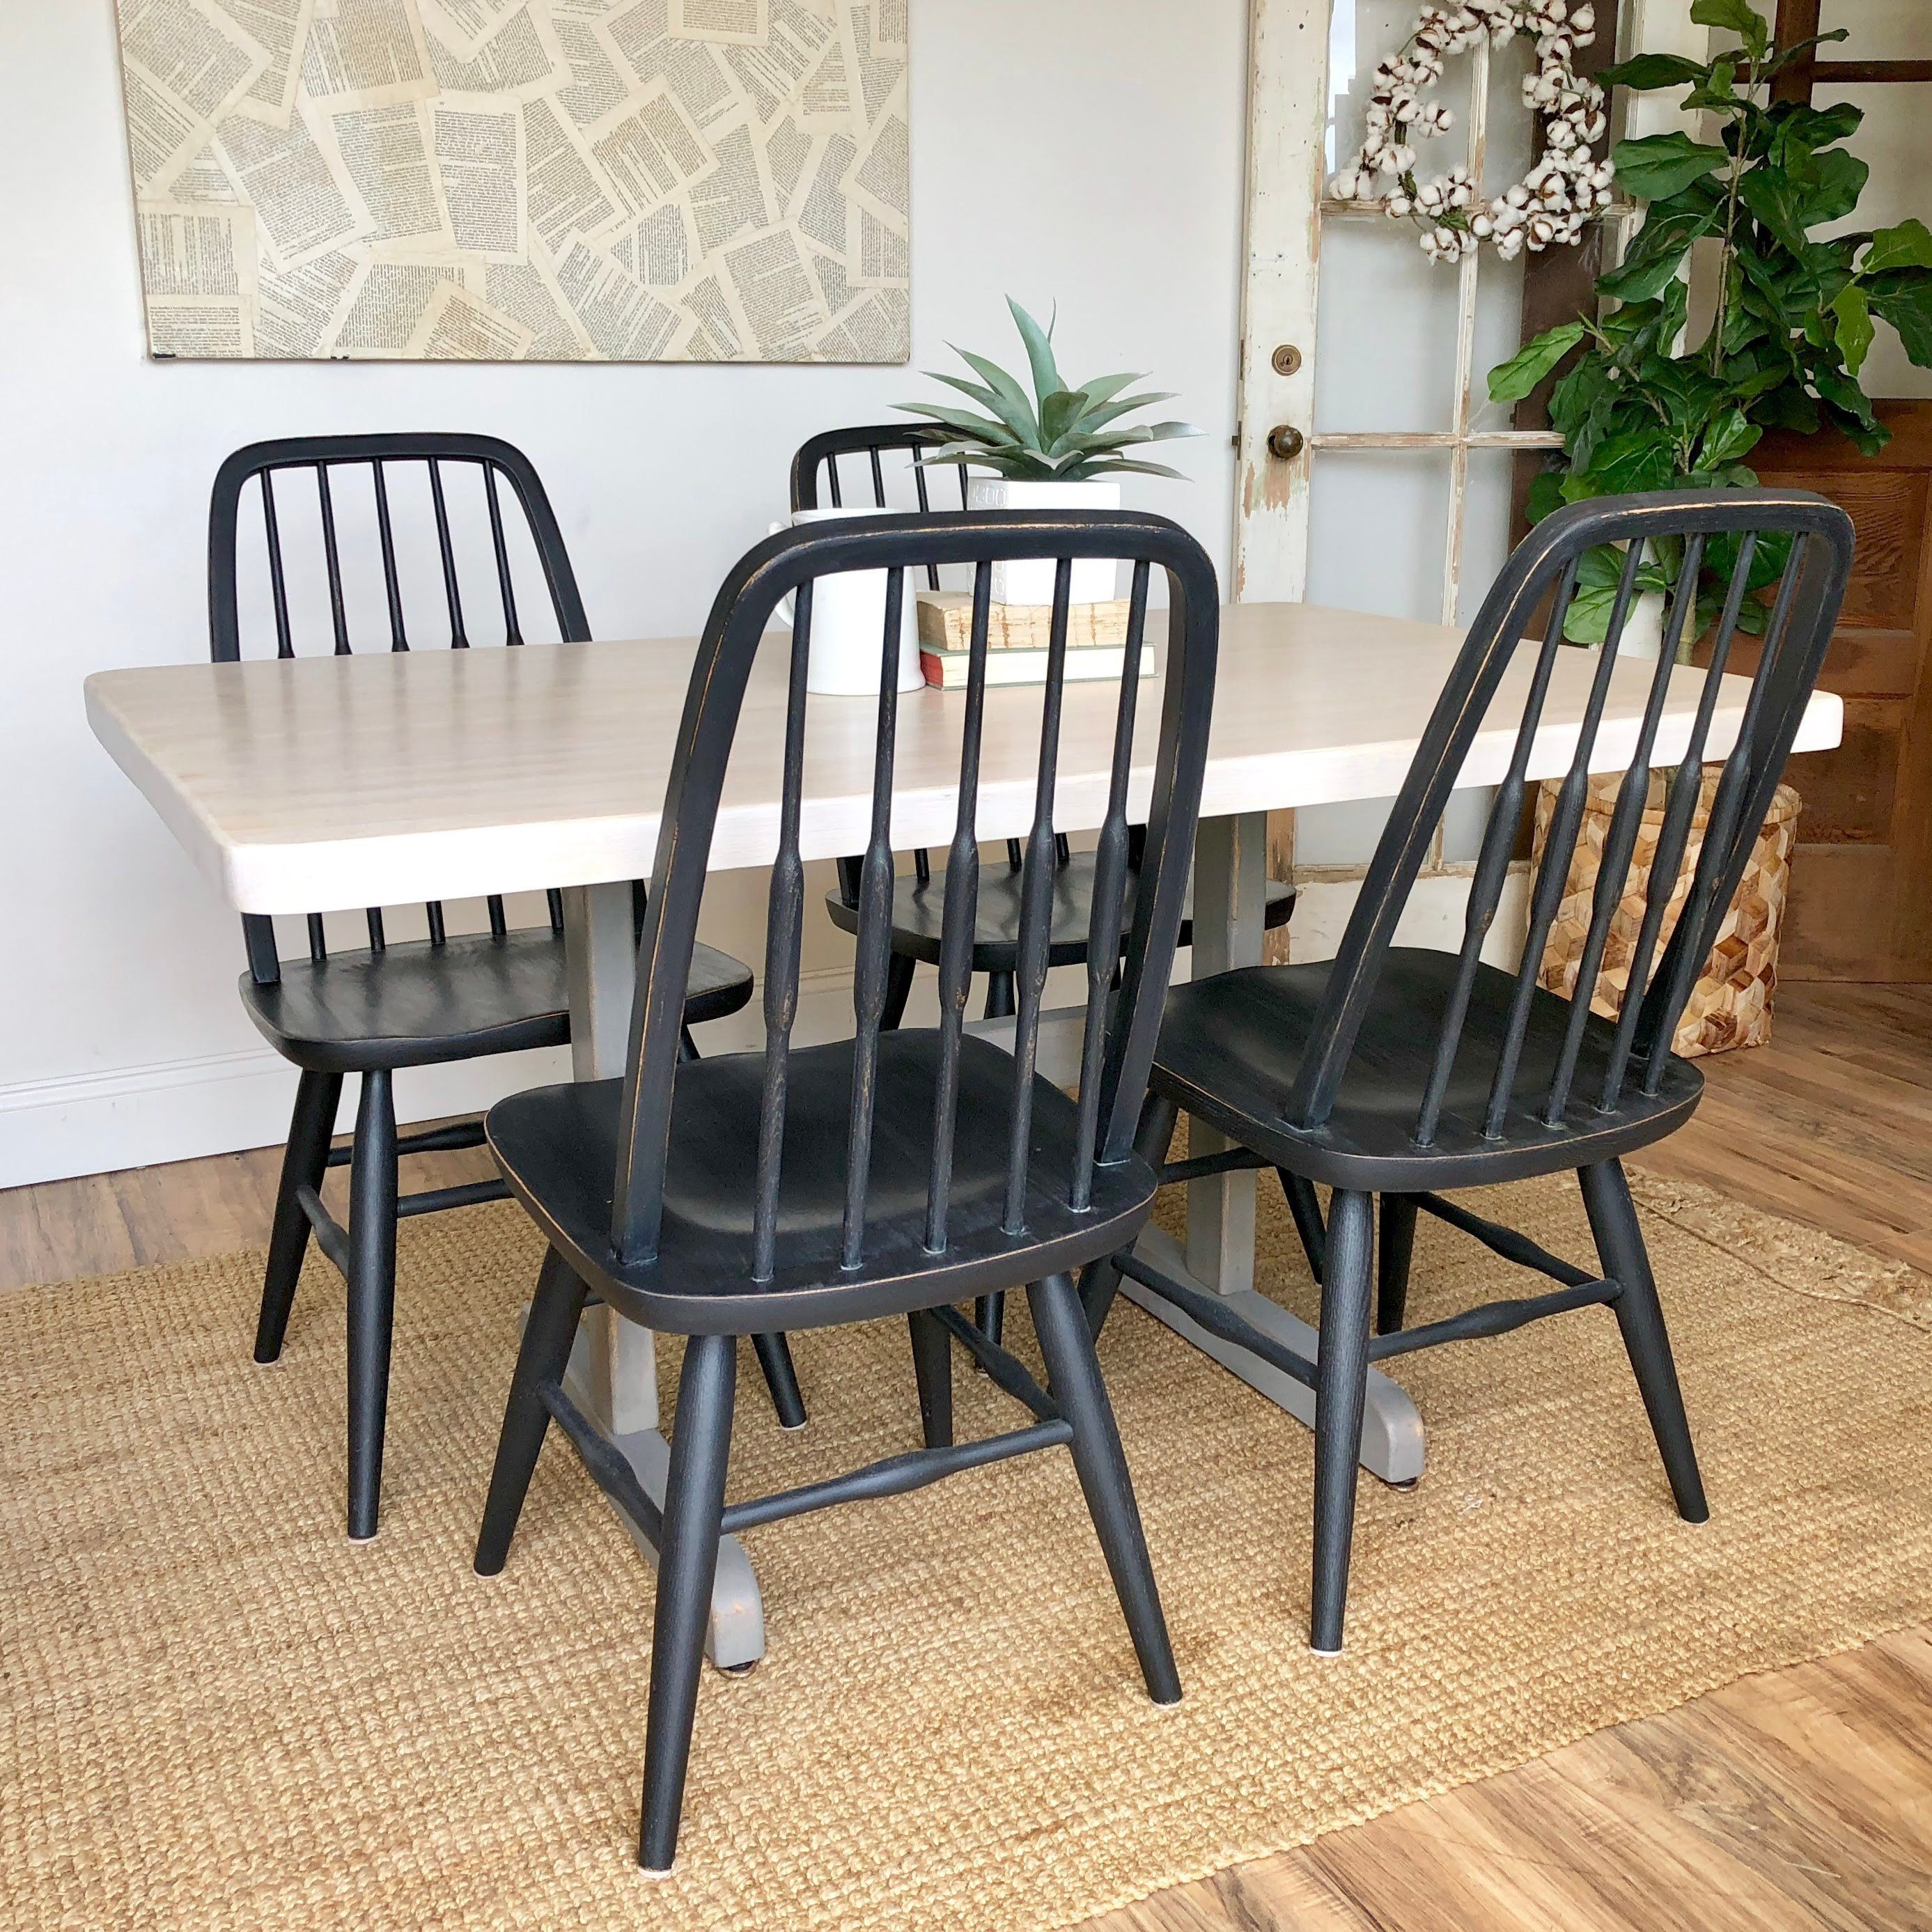 Butcher block table and chairs farmhouse furniture